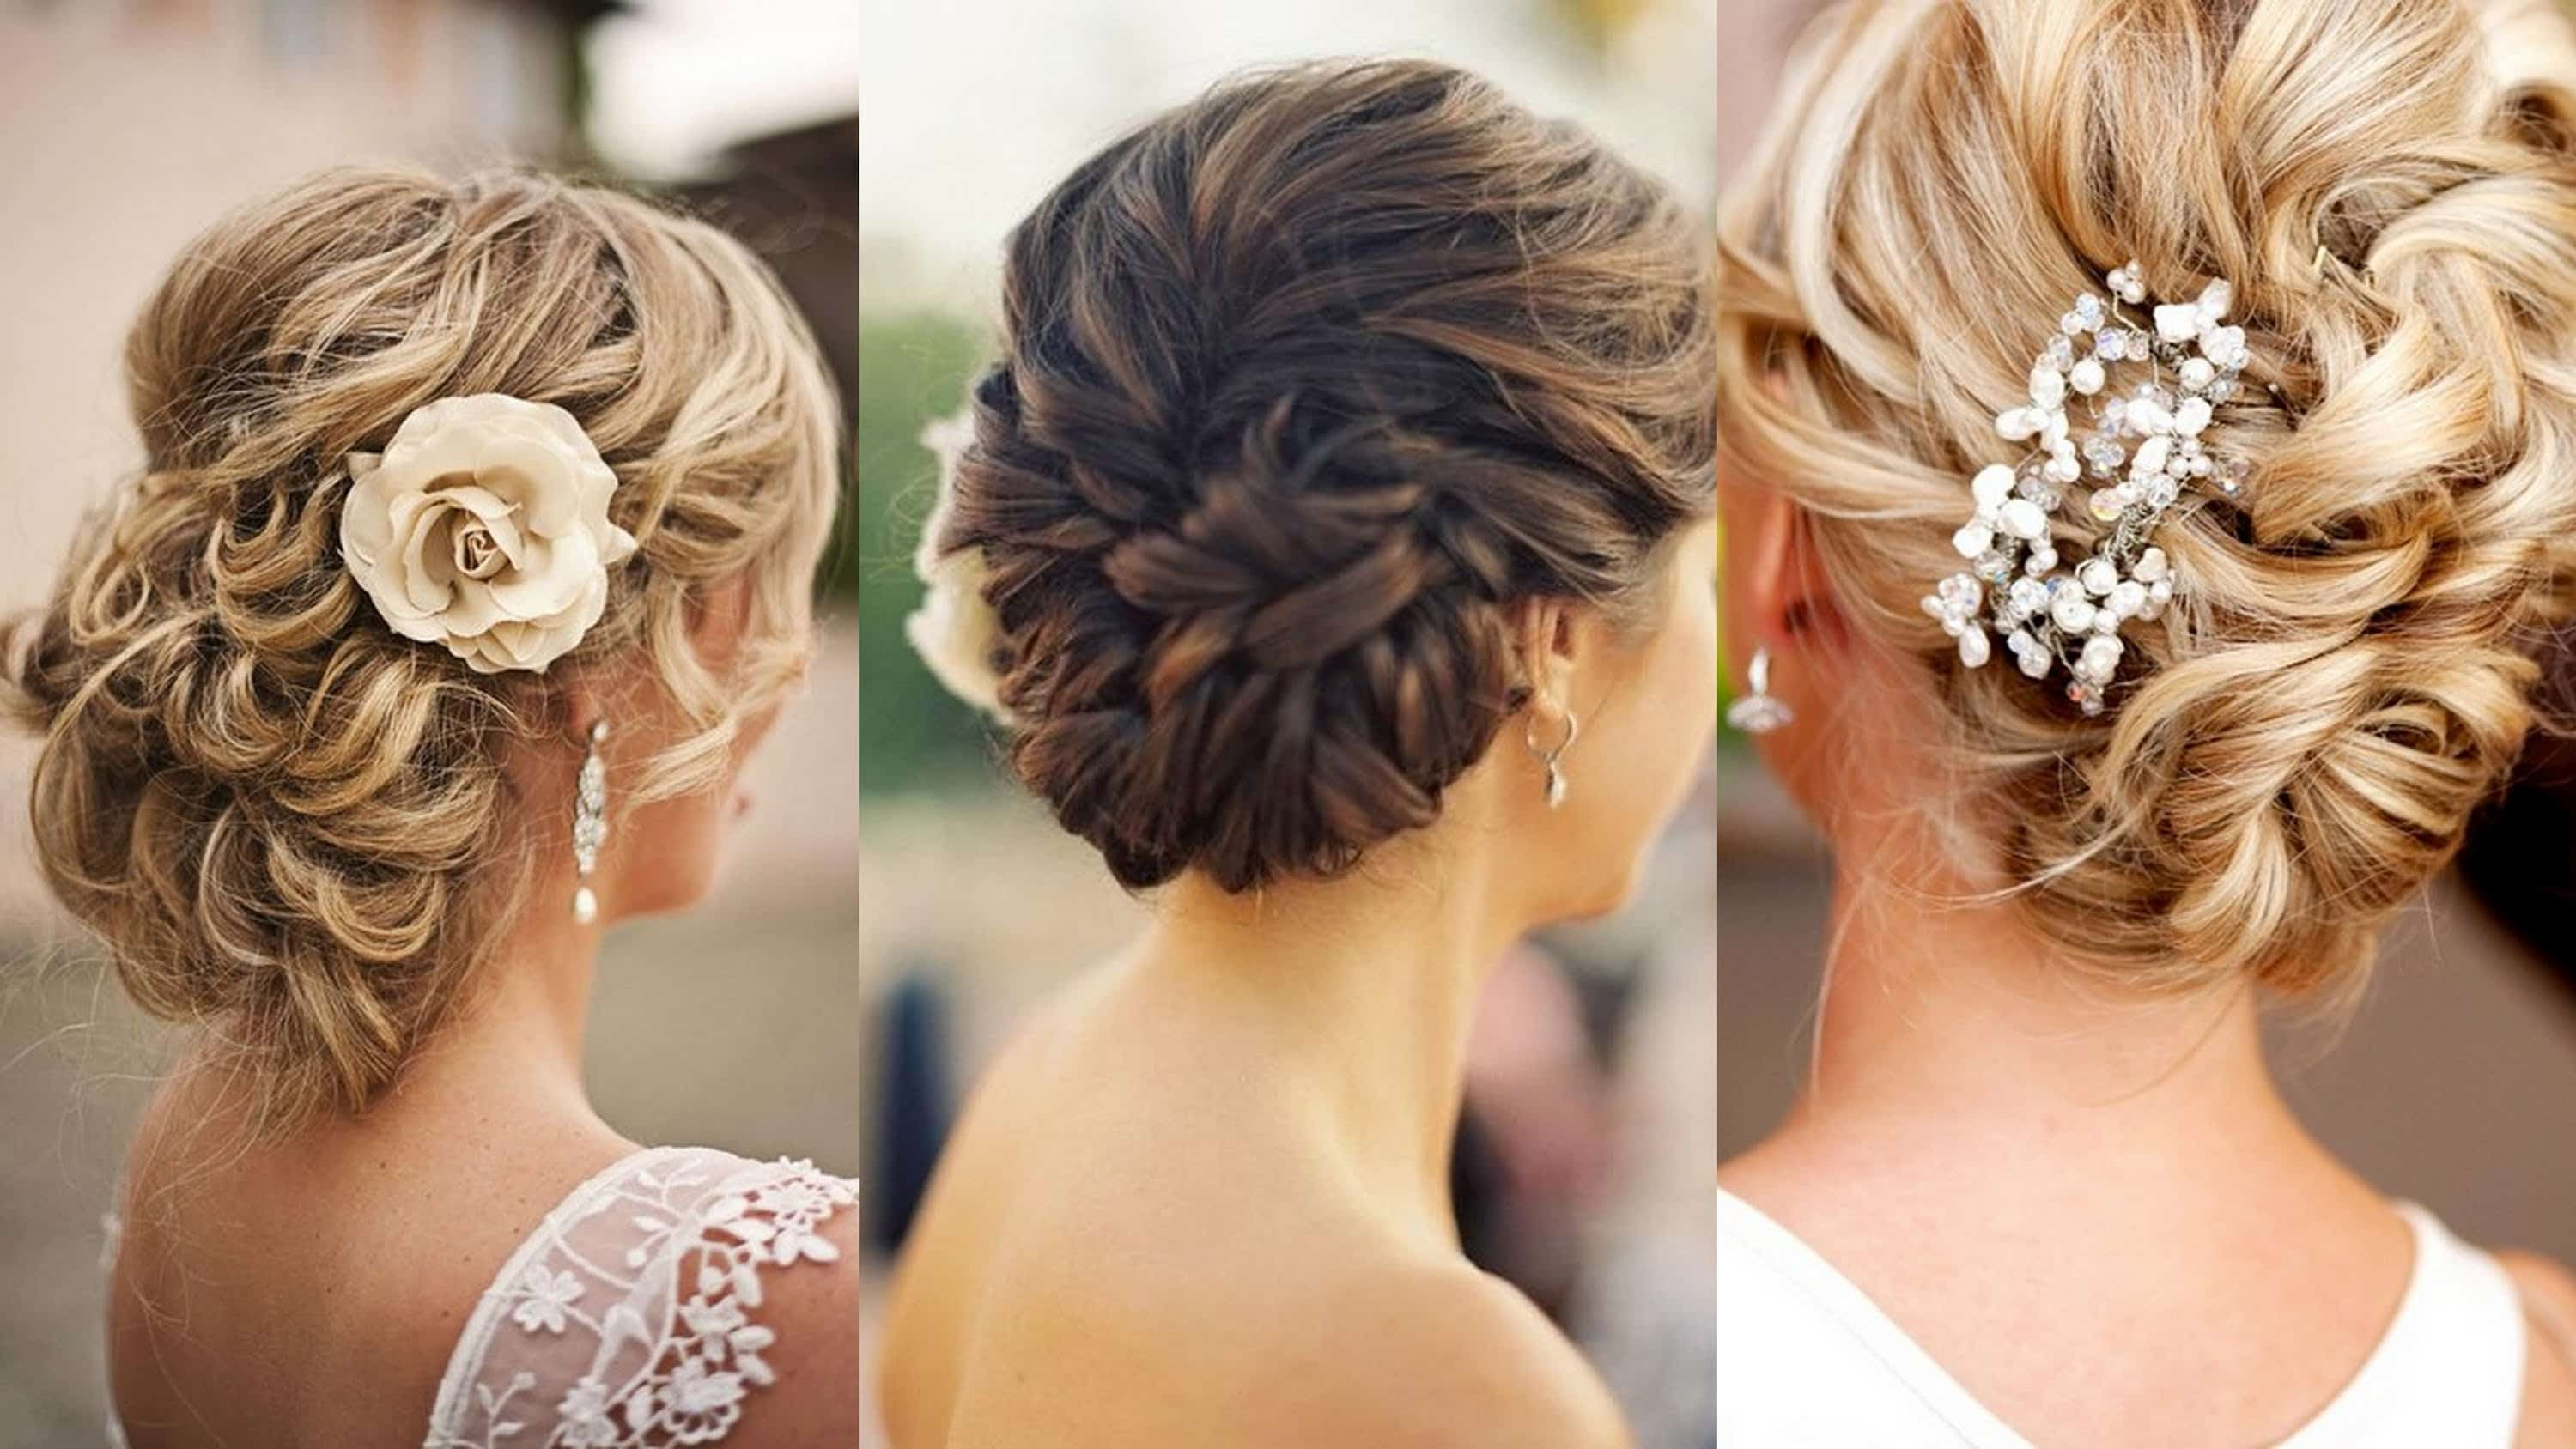 Let's know about some Wedding Hairstyles